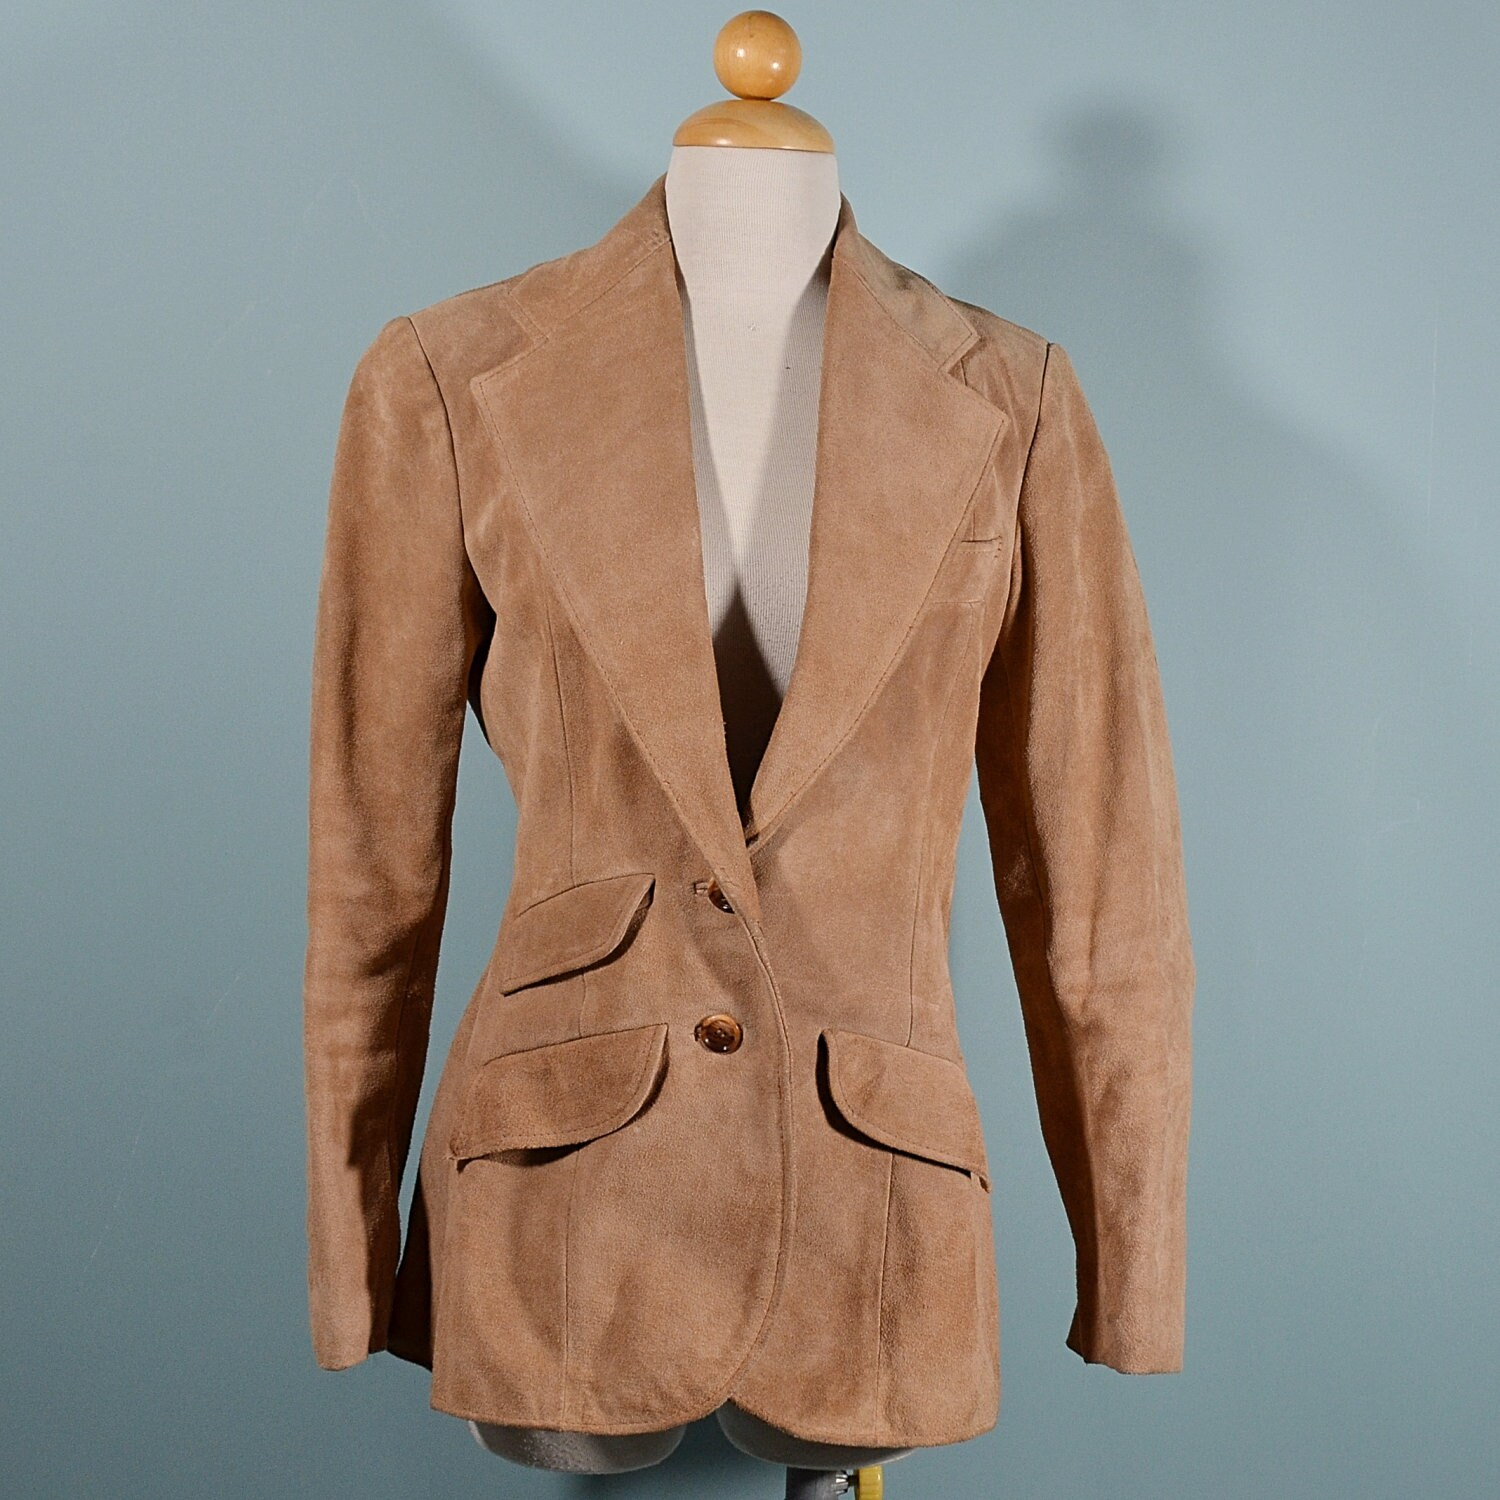 6c2a51326d84f Vintage 70s Womens Tan Suede Fitted Blazer Preppy Western Mod